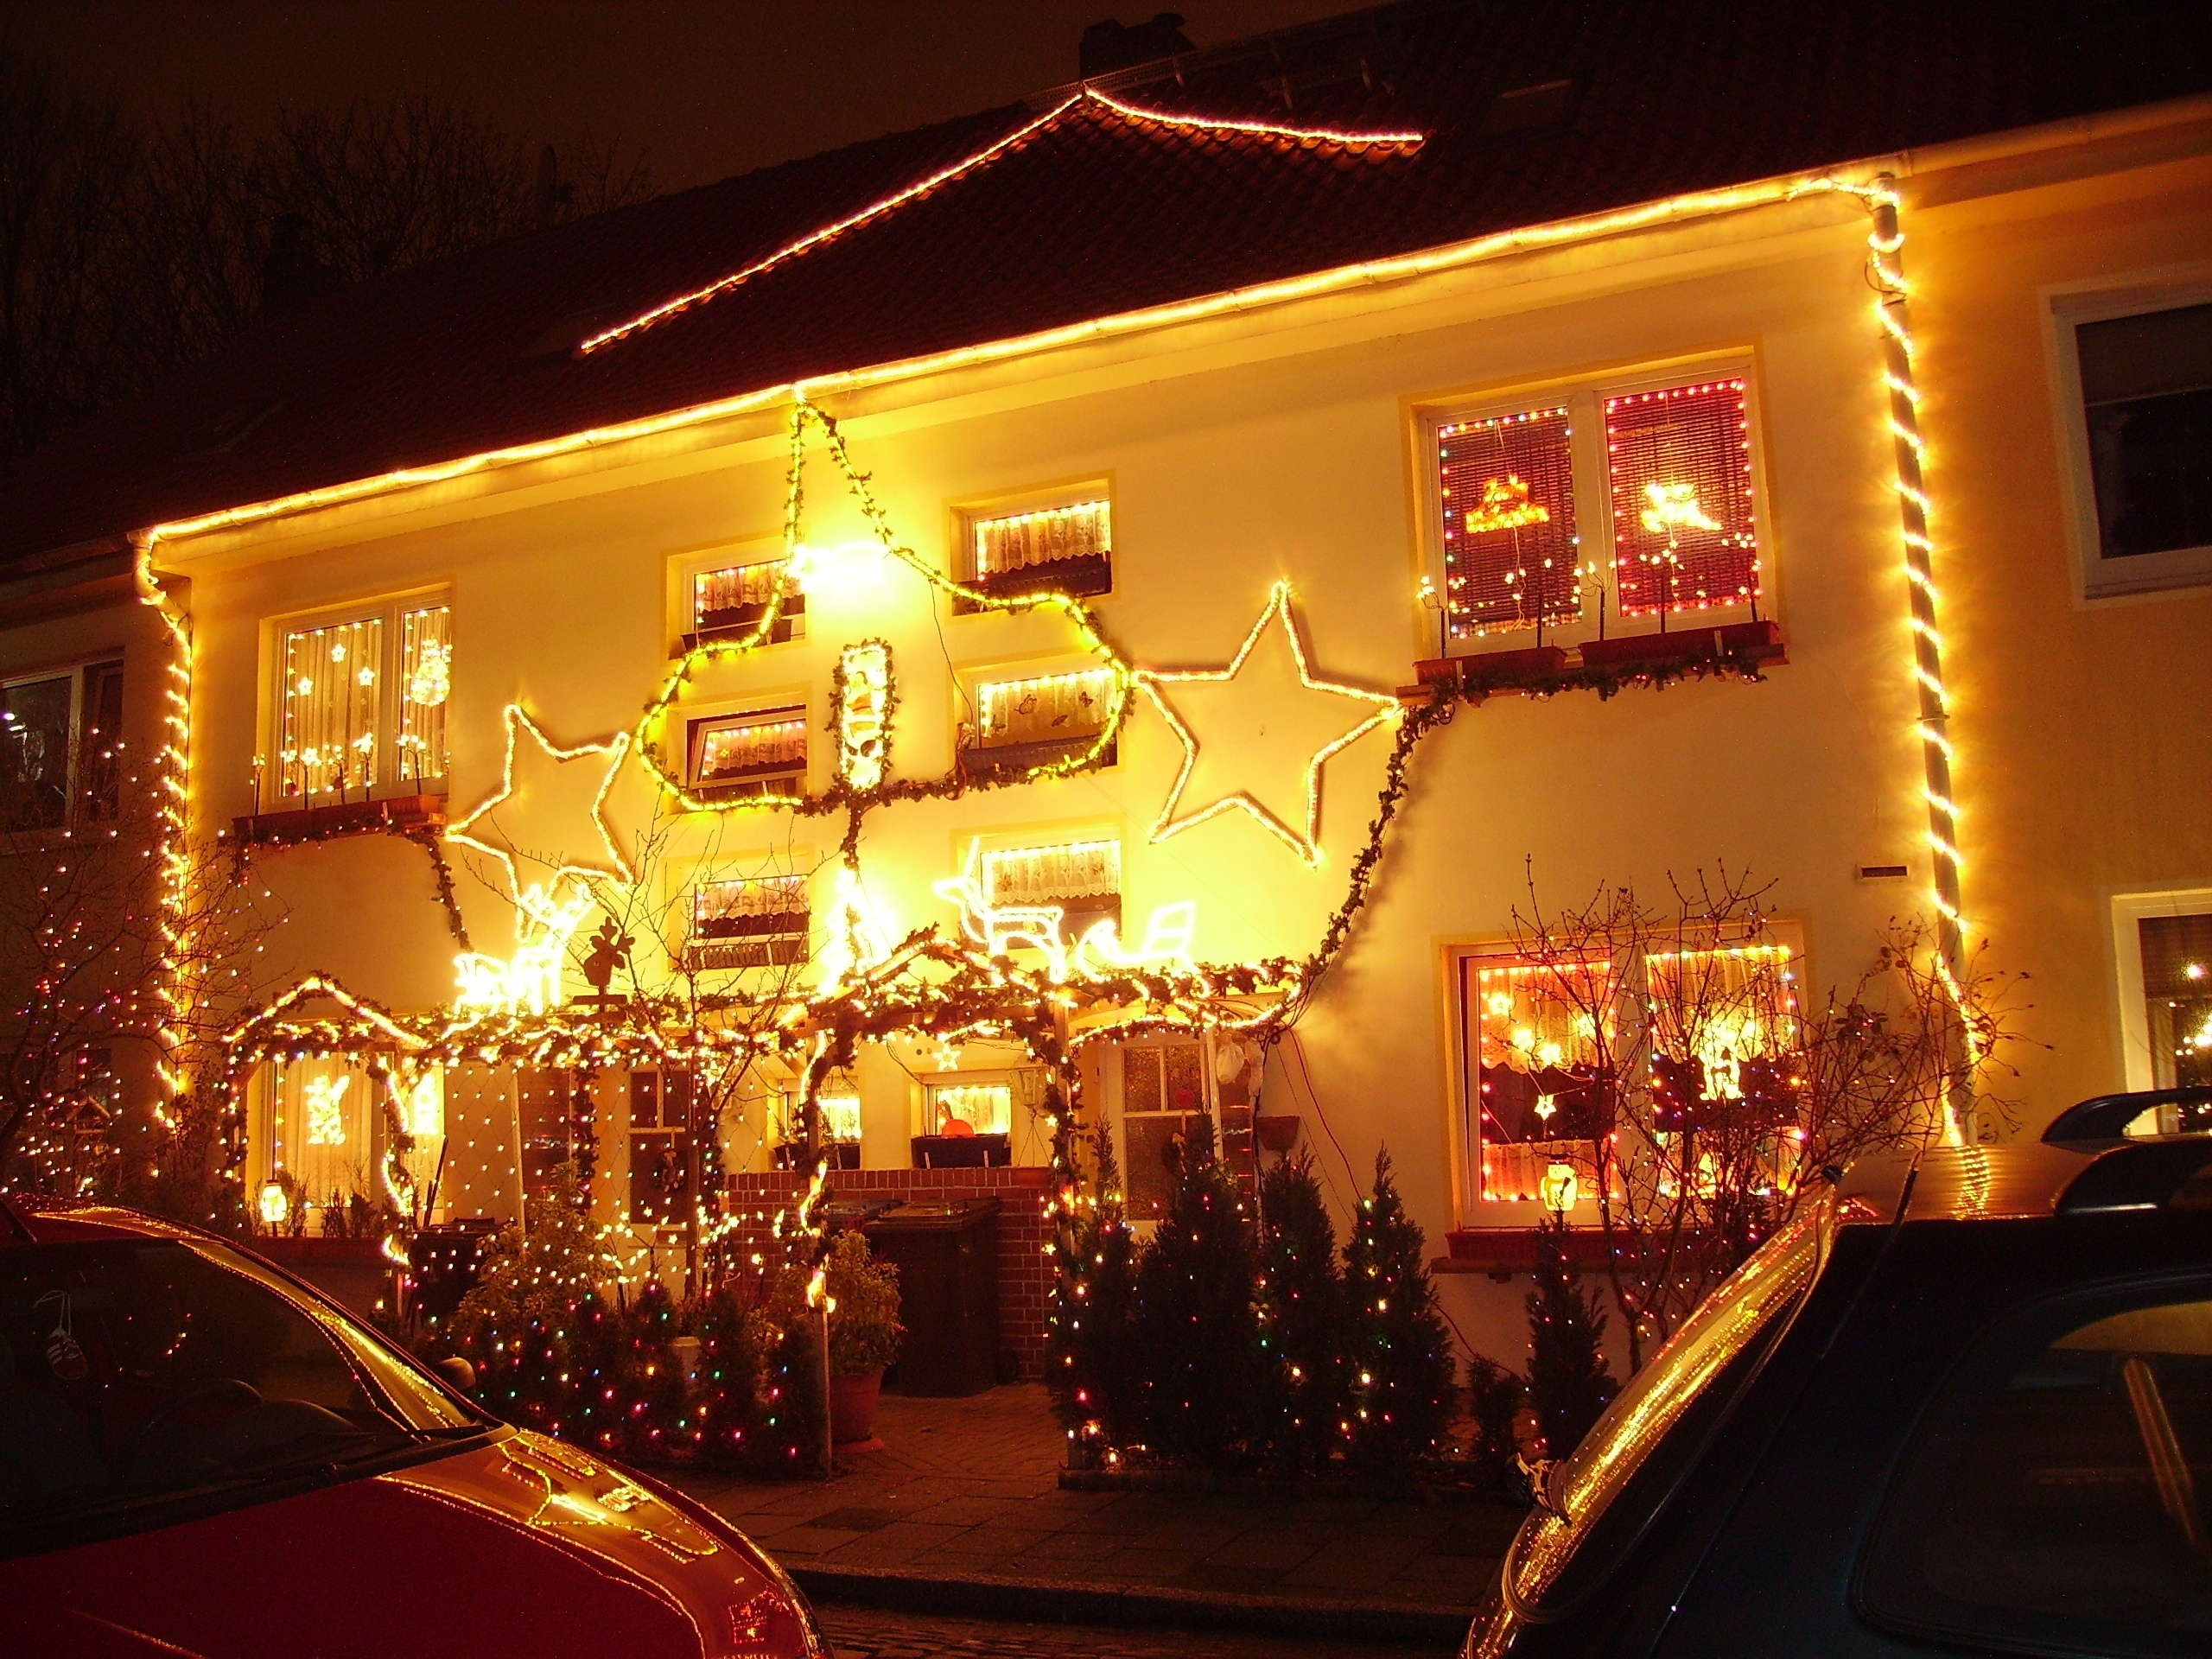 Christmas house decorations with beautiful lighting and Holiday decorated homes